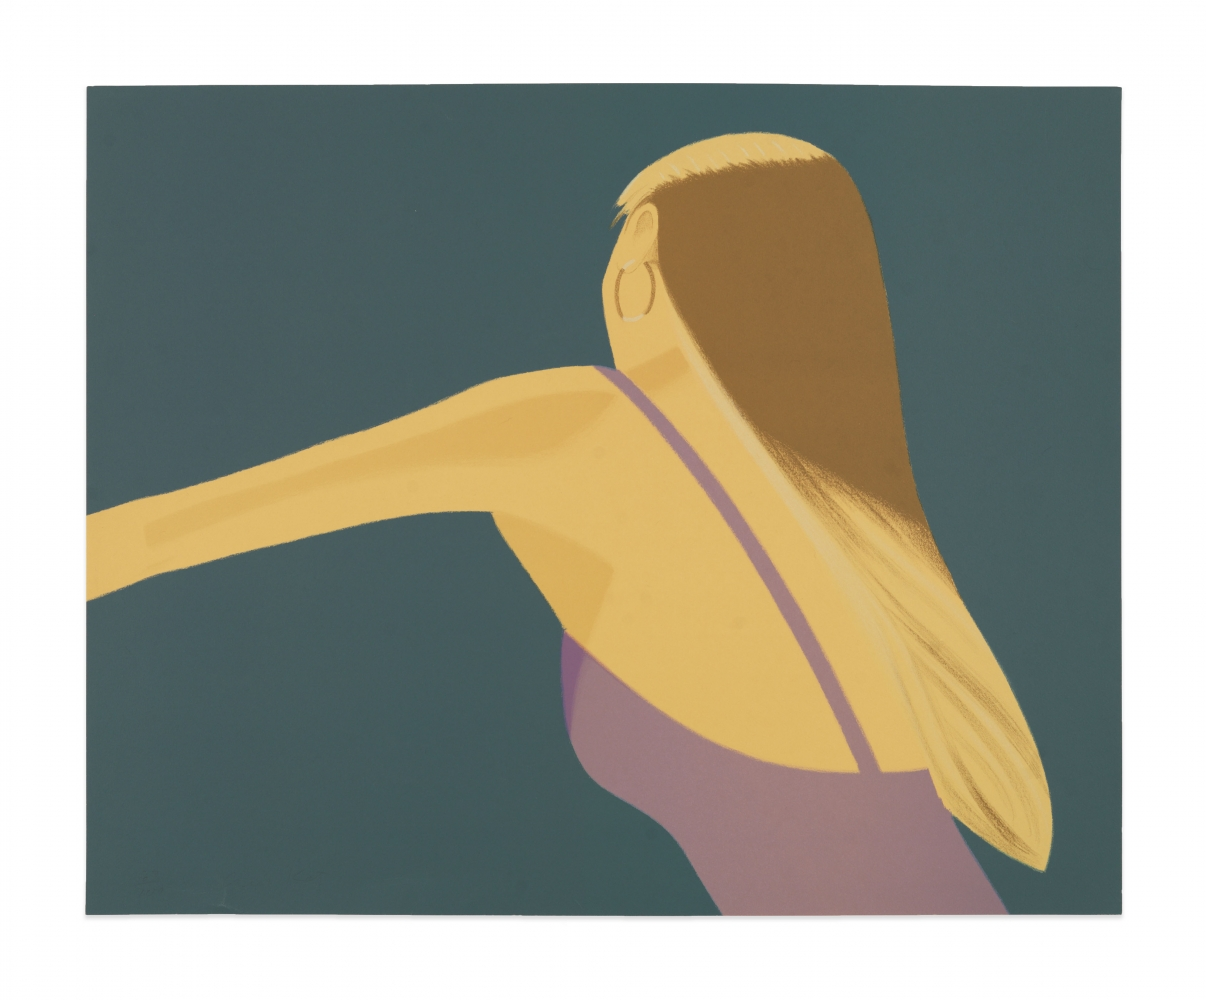 Color lithograph by Alex Katz featuring the back of a woman dancing with one arm stretched out wearing a lavender top and gold hoop earrings against a blue background